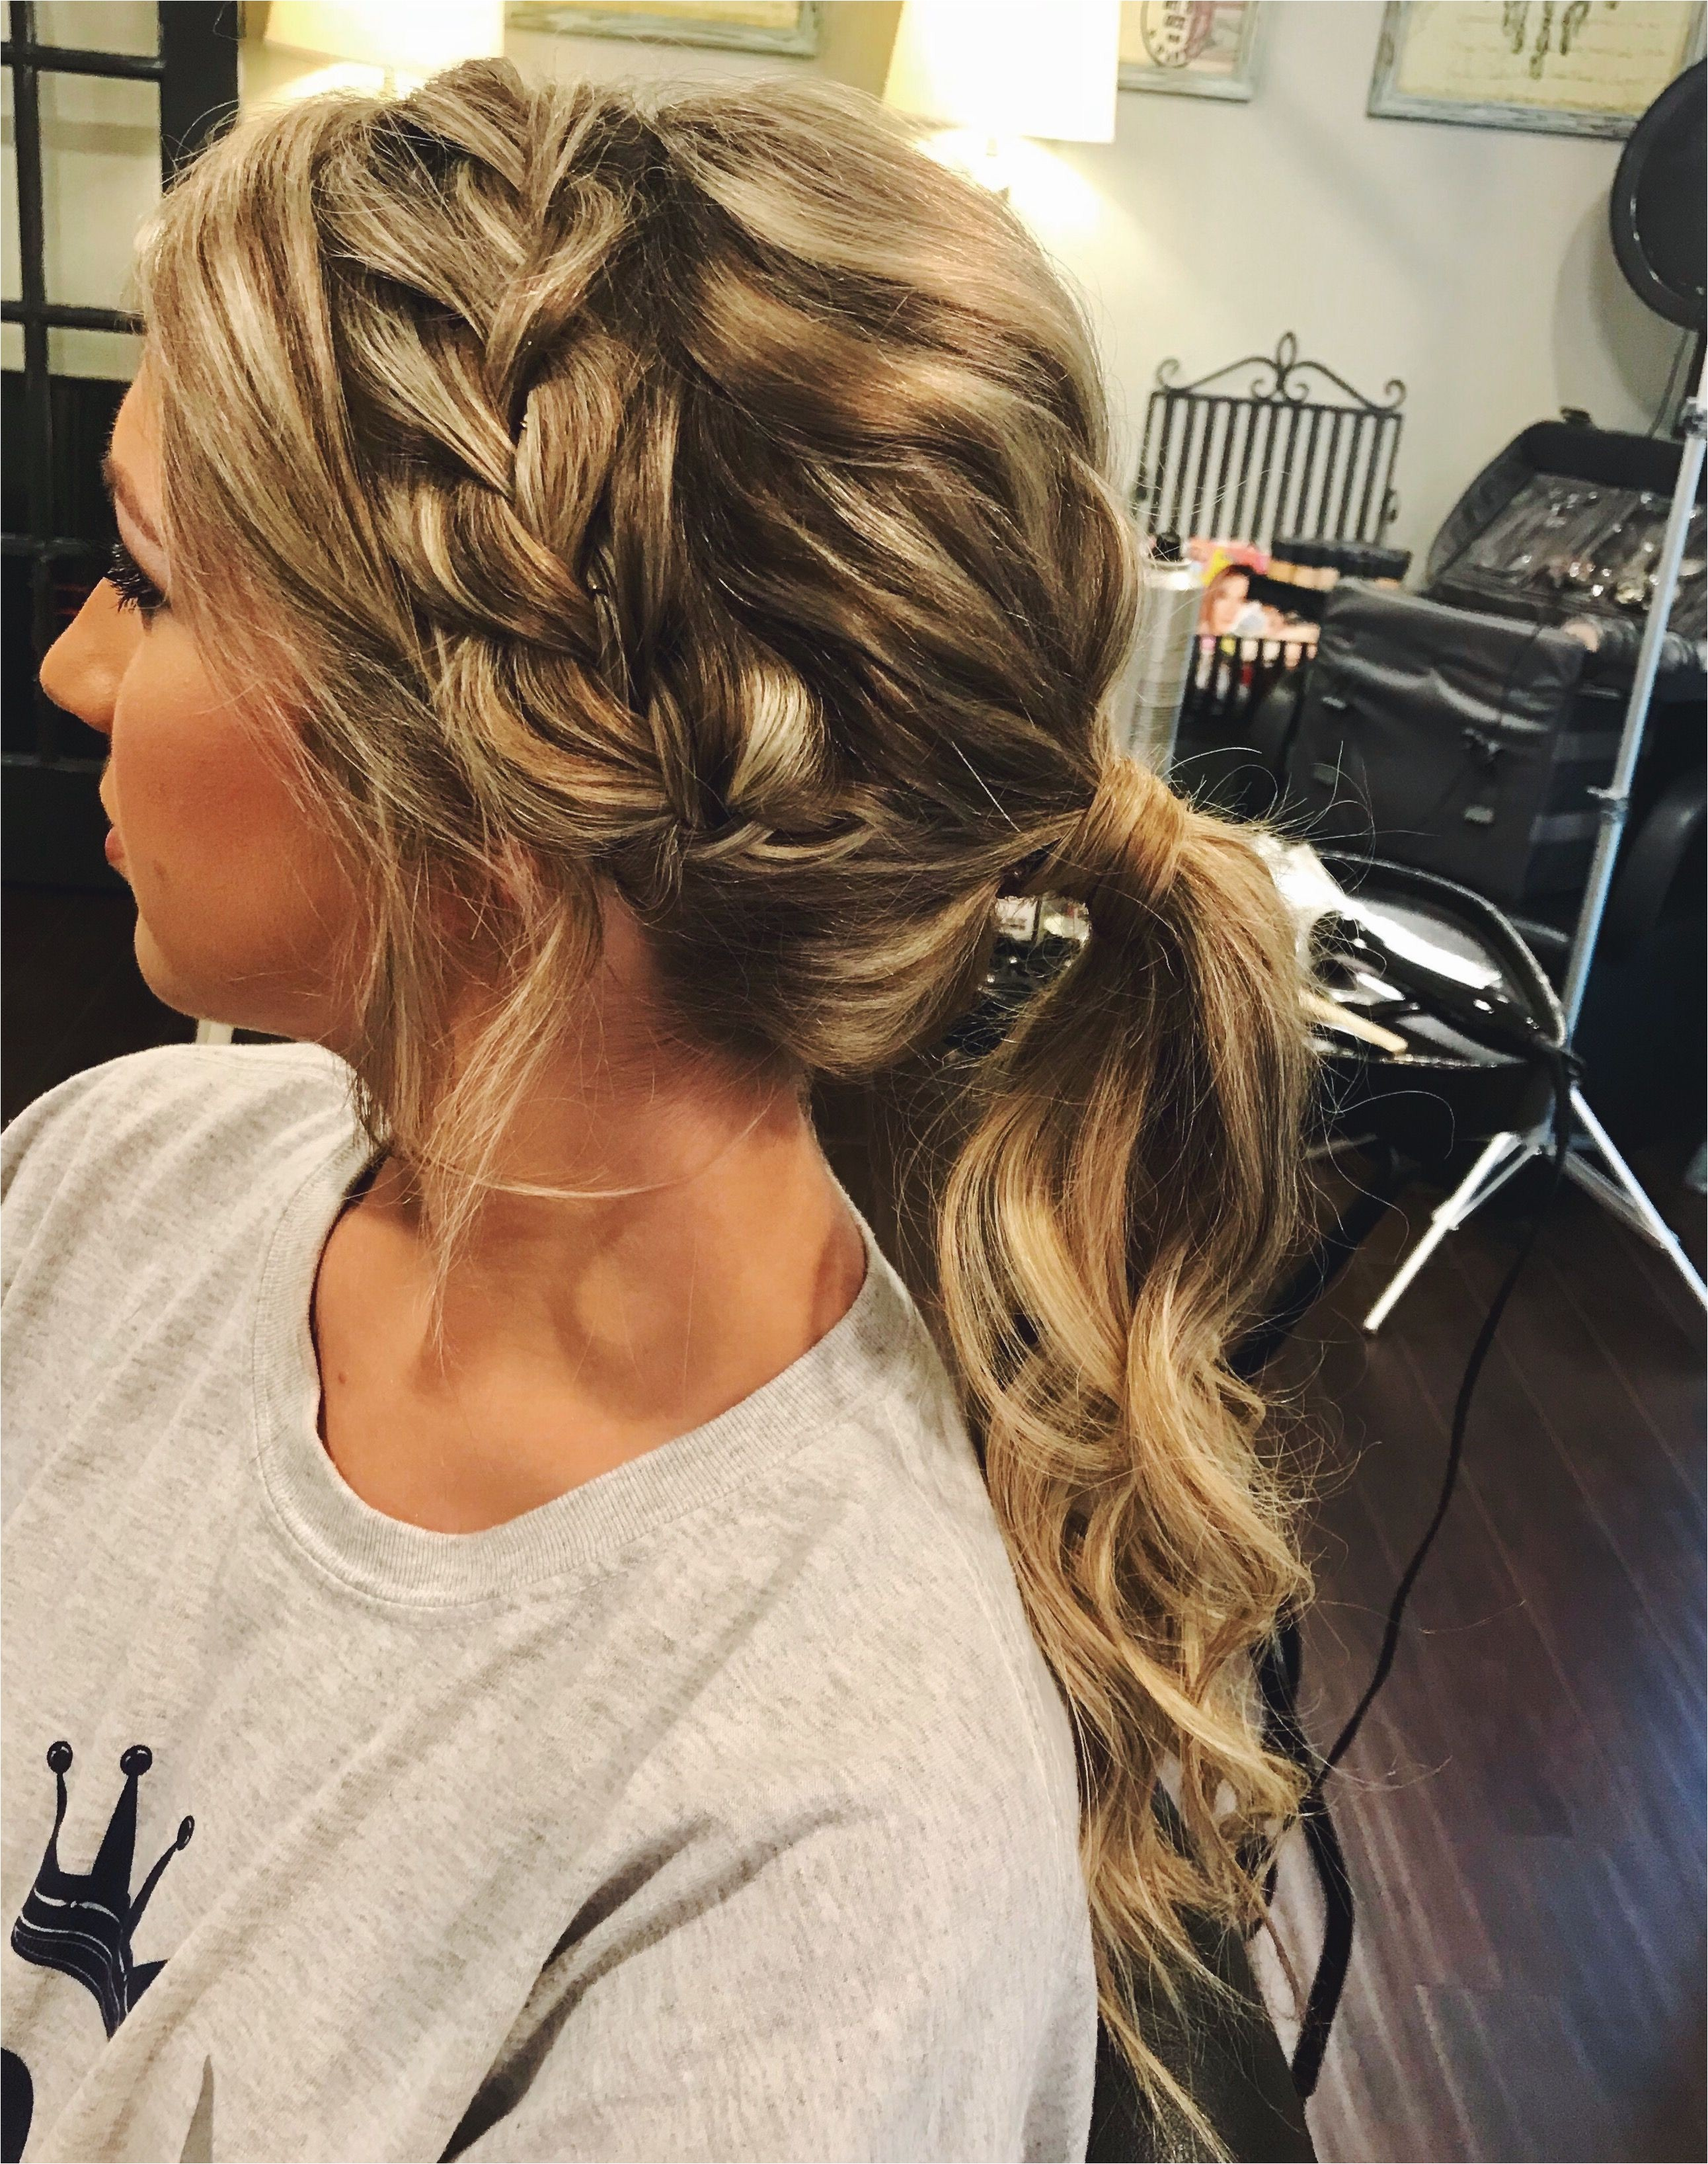 Hairstyles for Homecoming with Braids Prom Hair Ponytail Updo Braid Hair Pinterest